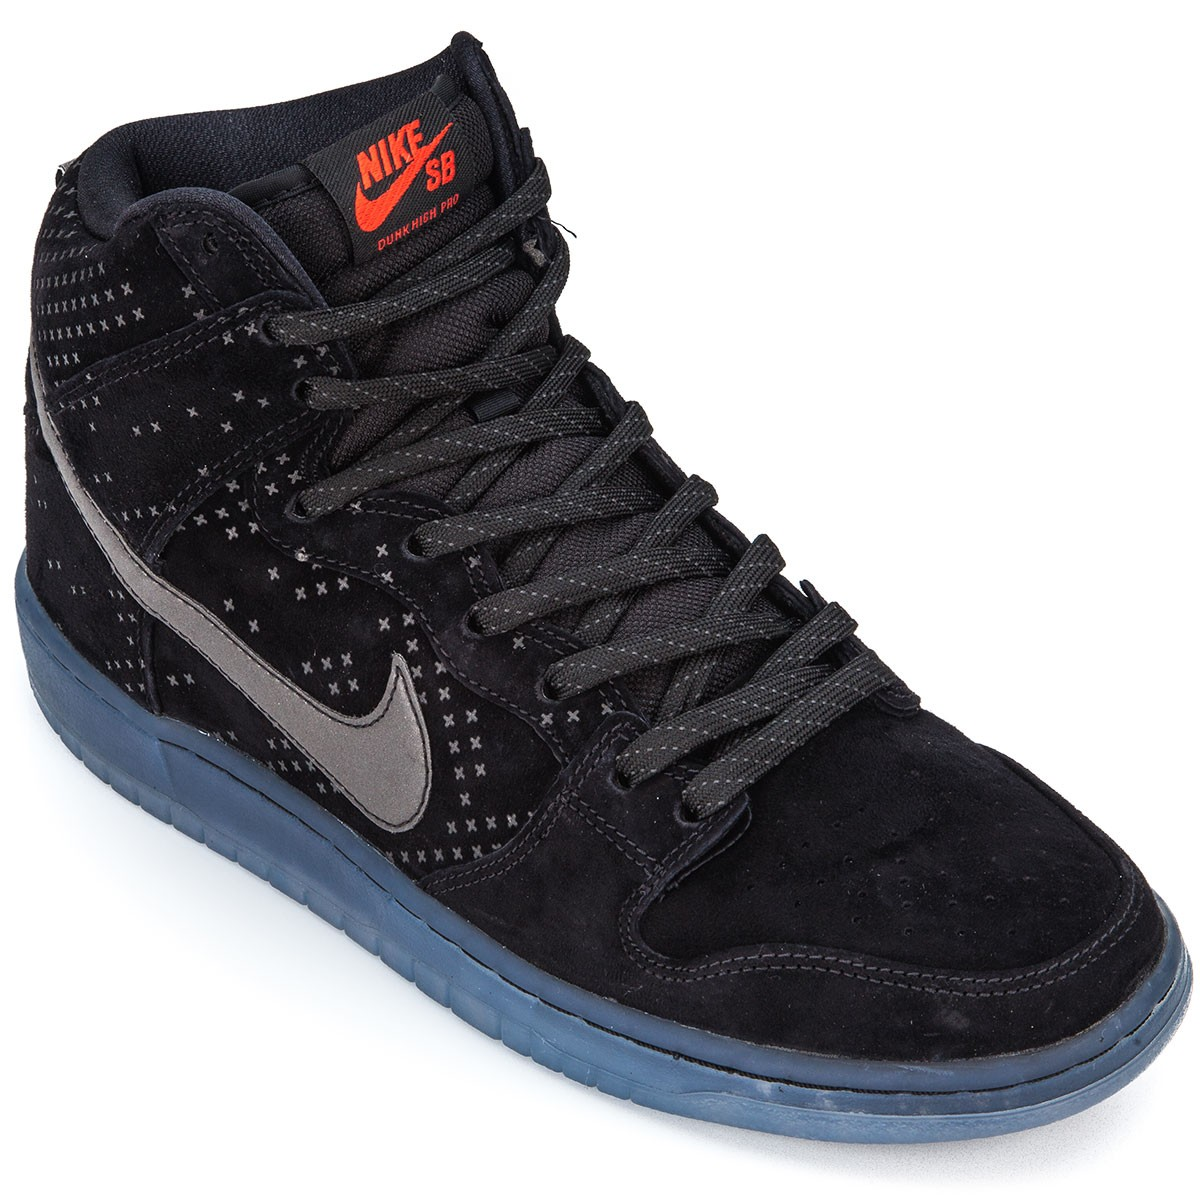 big sale a6820 29f00 Nike Dunk High Premium Flash SB Shoes - Black Clear Black - 10.0